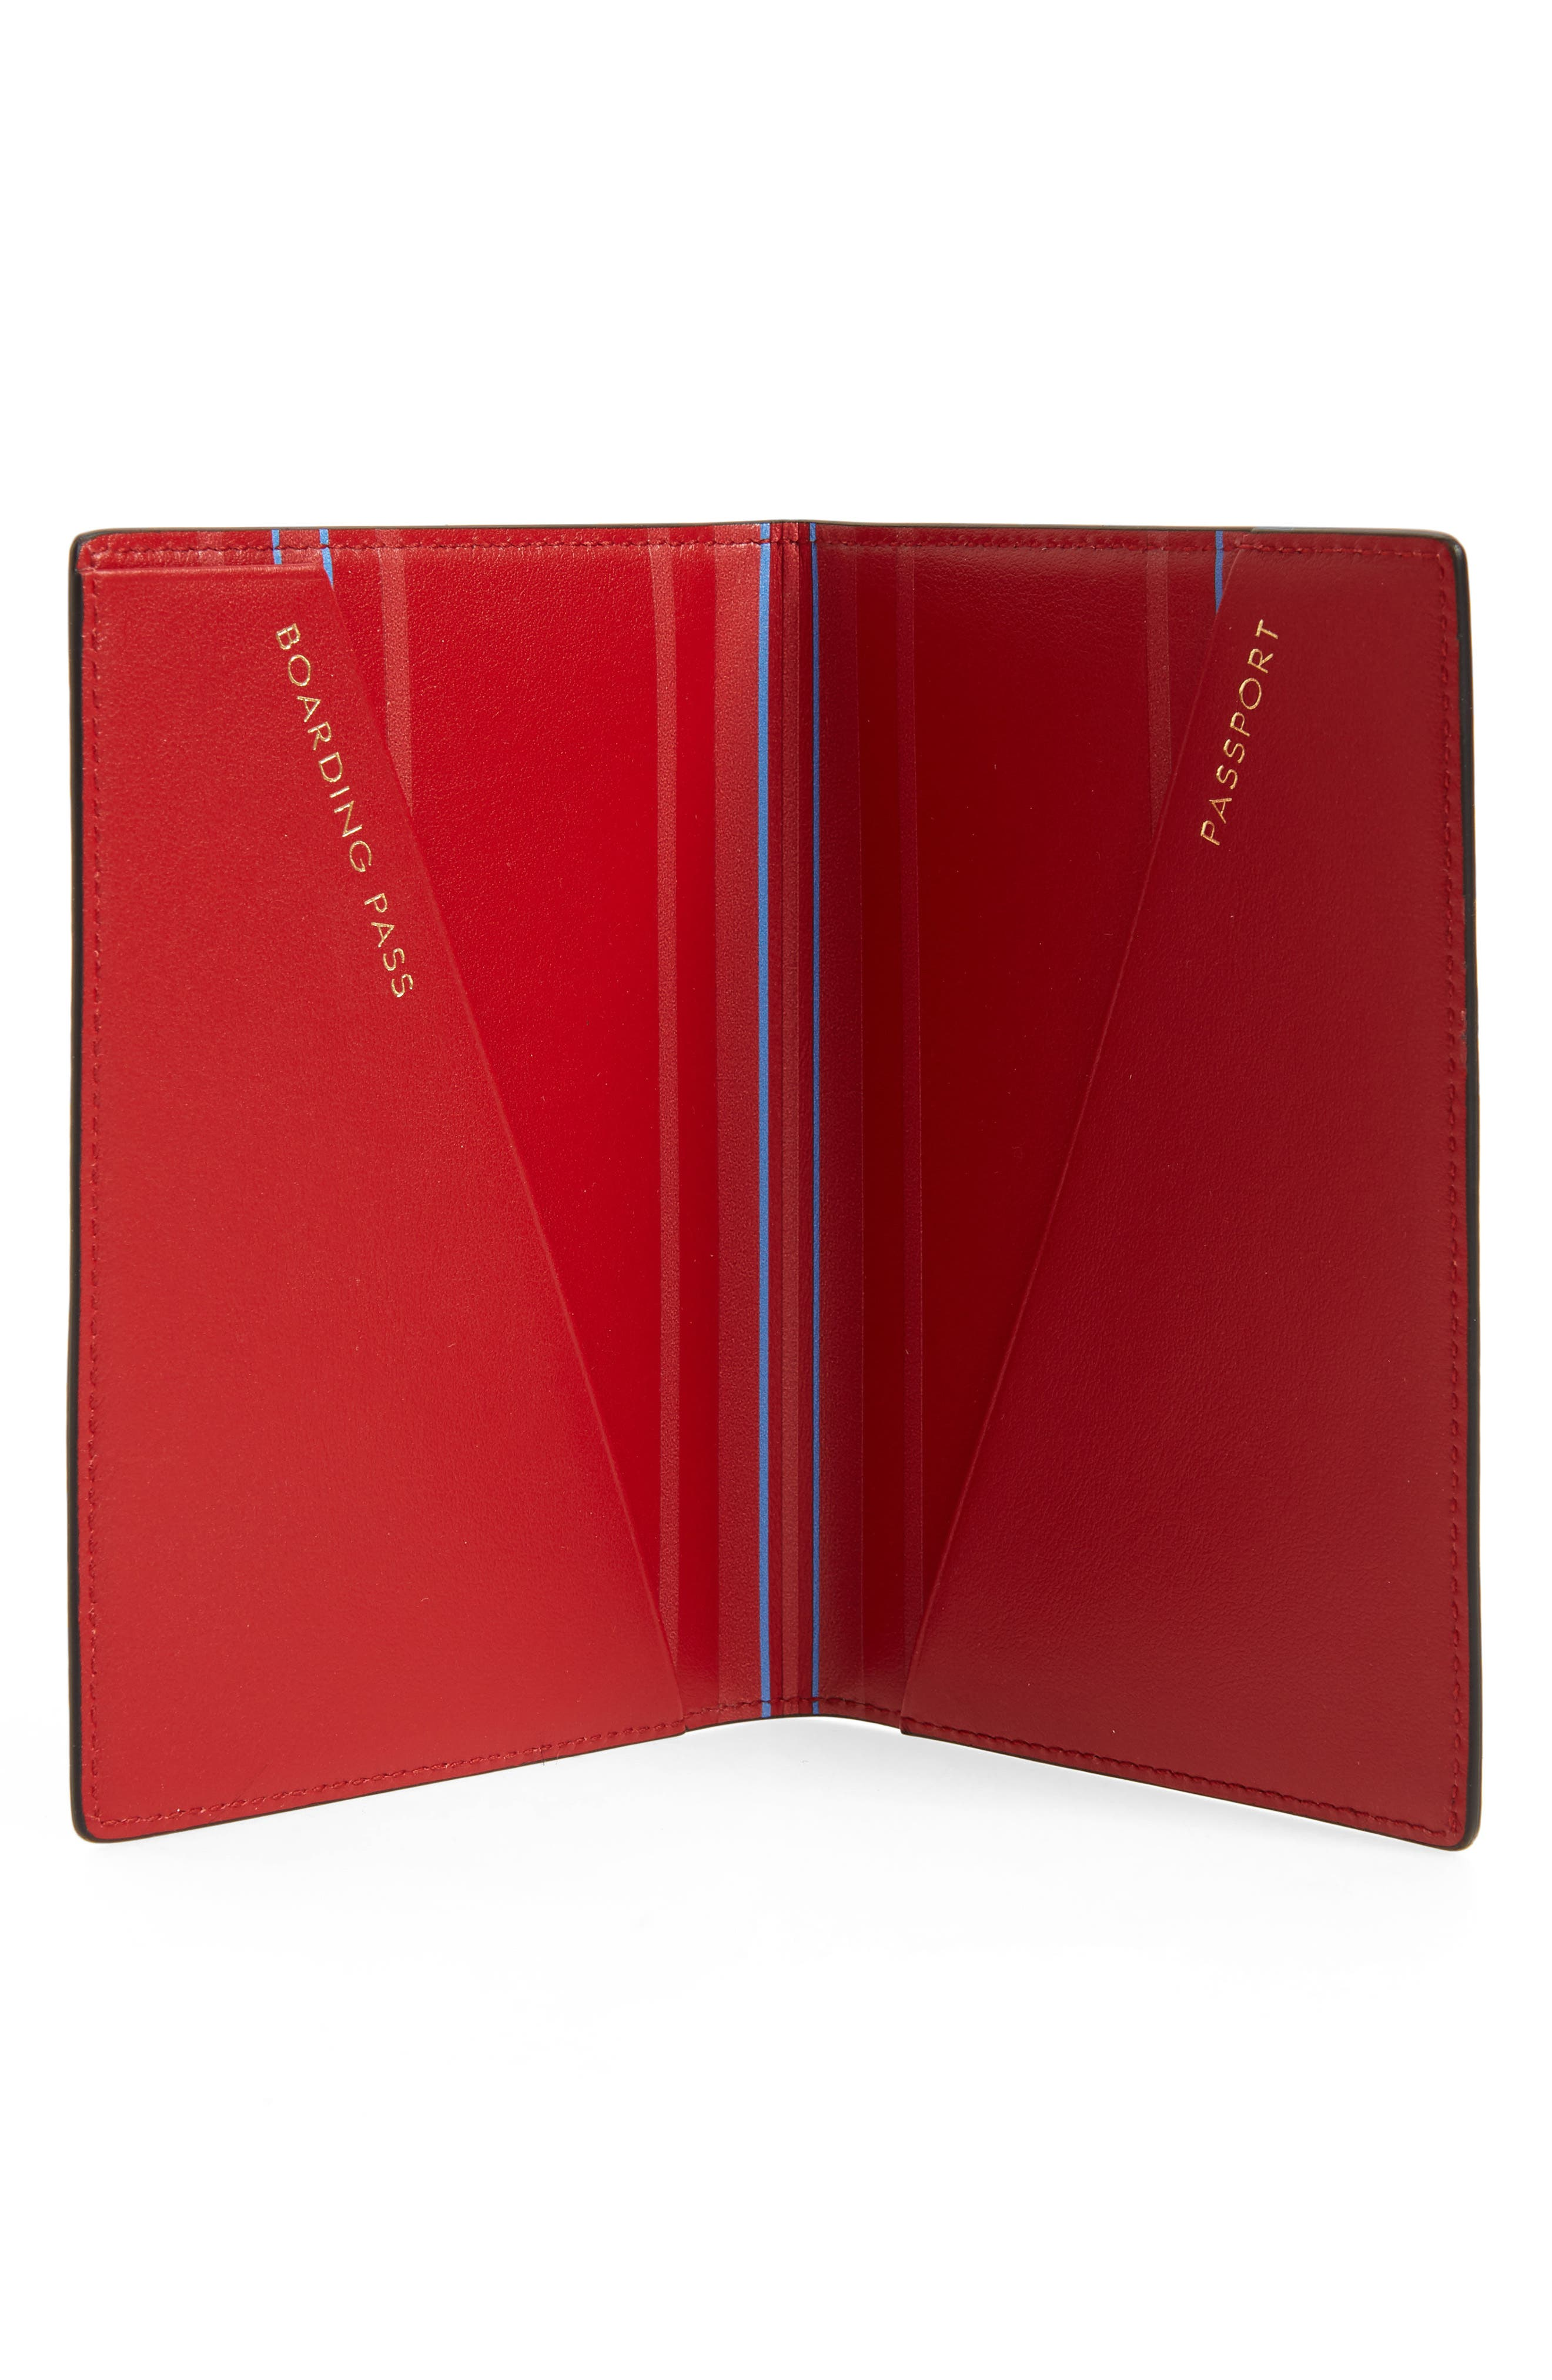 Hero Leather Passport Cover,                             Alternate thumbnail 2, color,                             Red